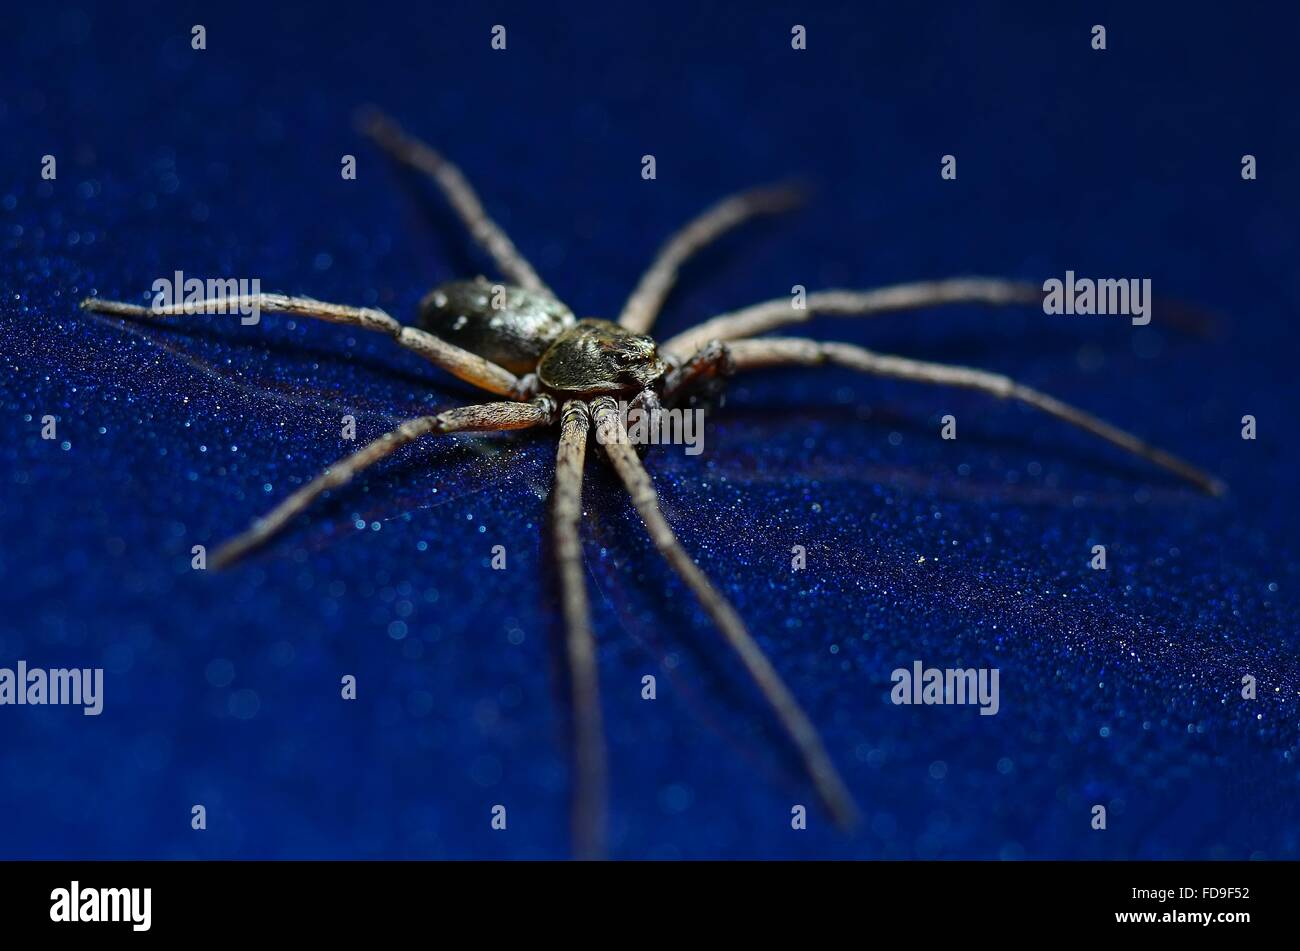 High Angle View Of Spider On Blue Table - Stock Image